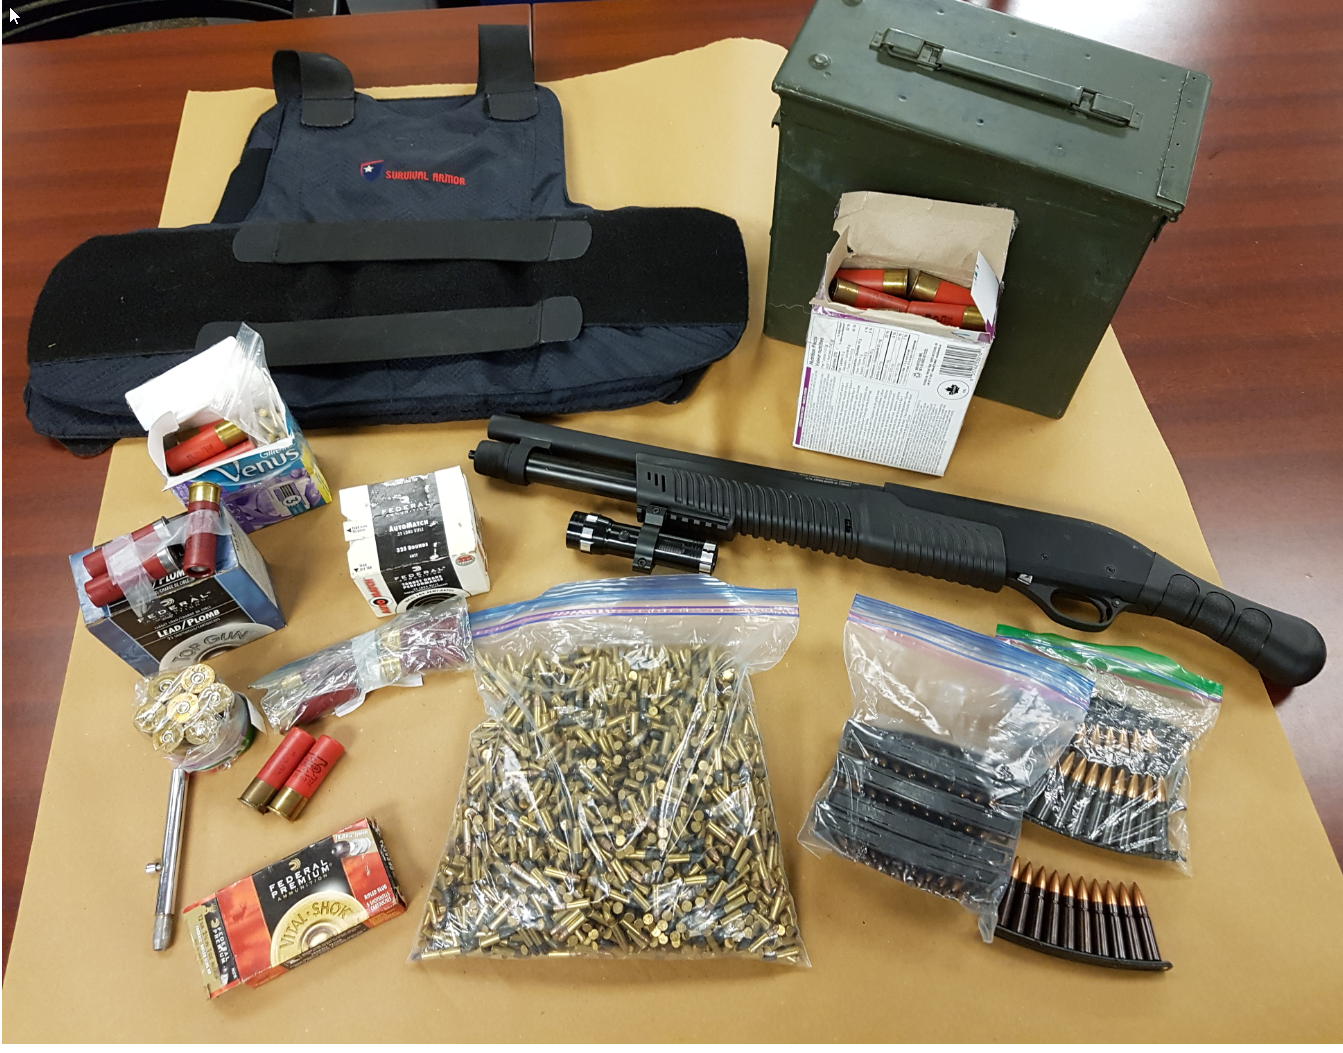 This is an image of the seized items